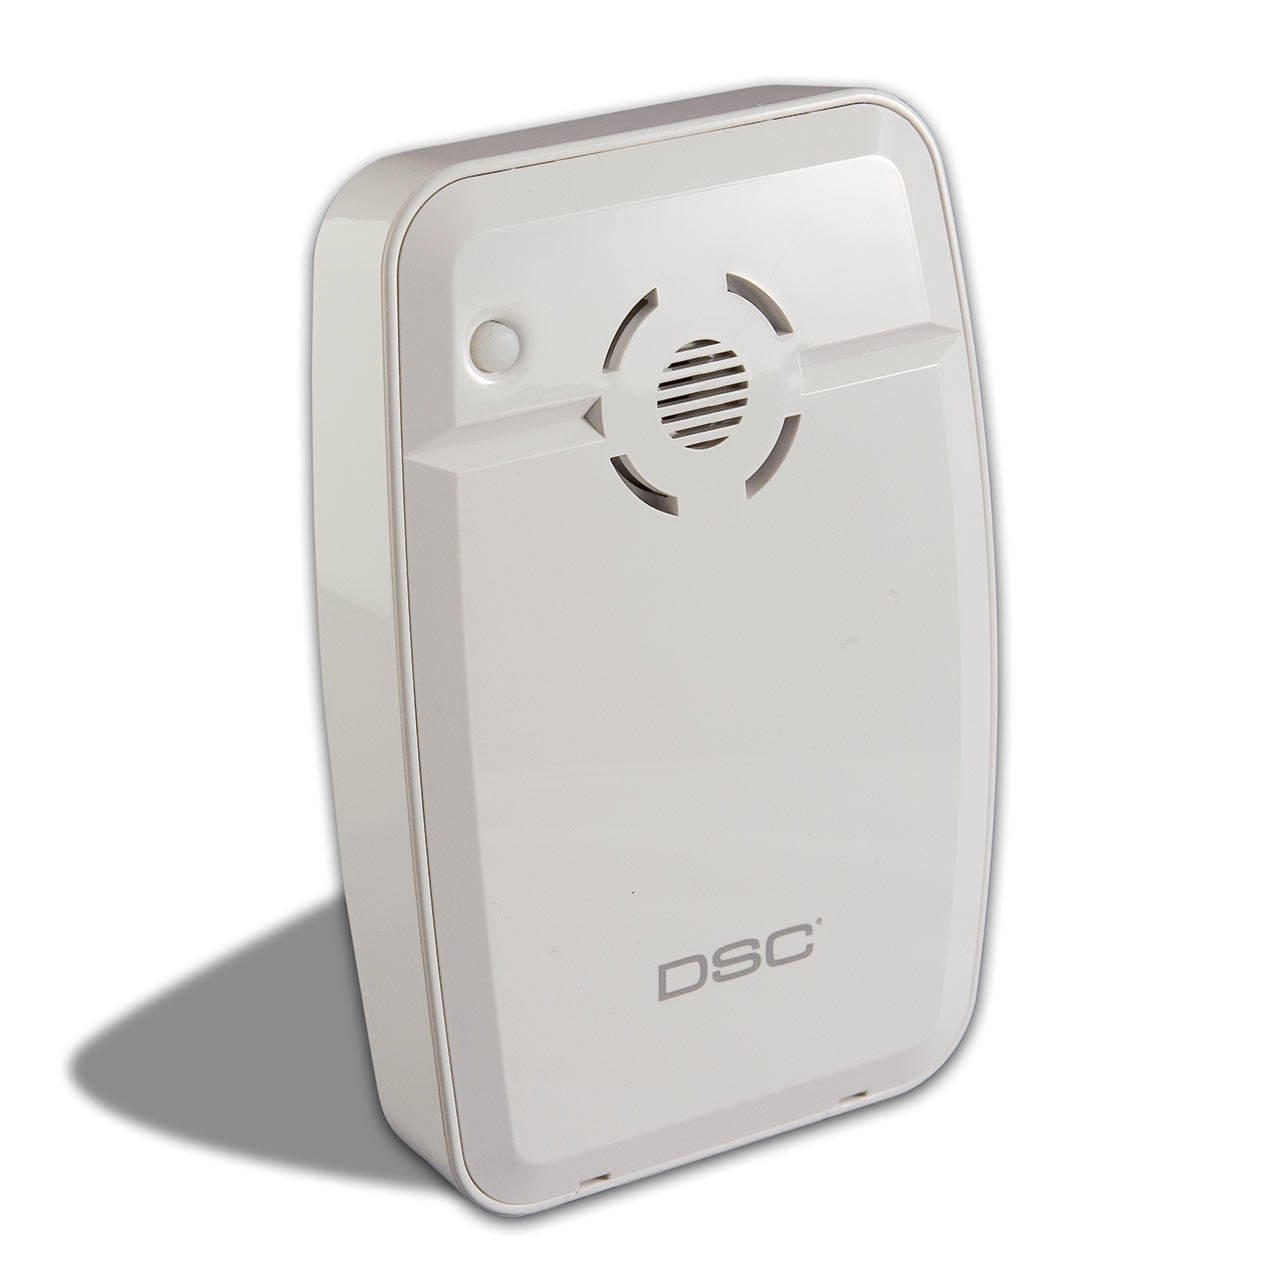 Dsc Wireless Alarm System Manual Security Schematic Battery Home In Sydney